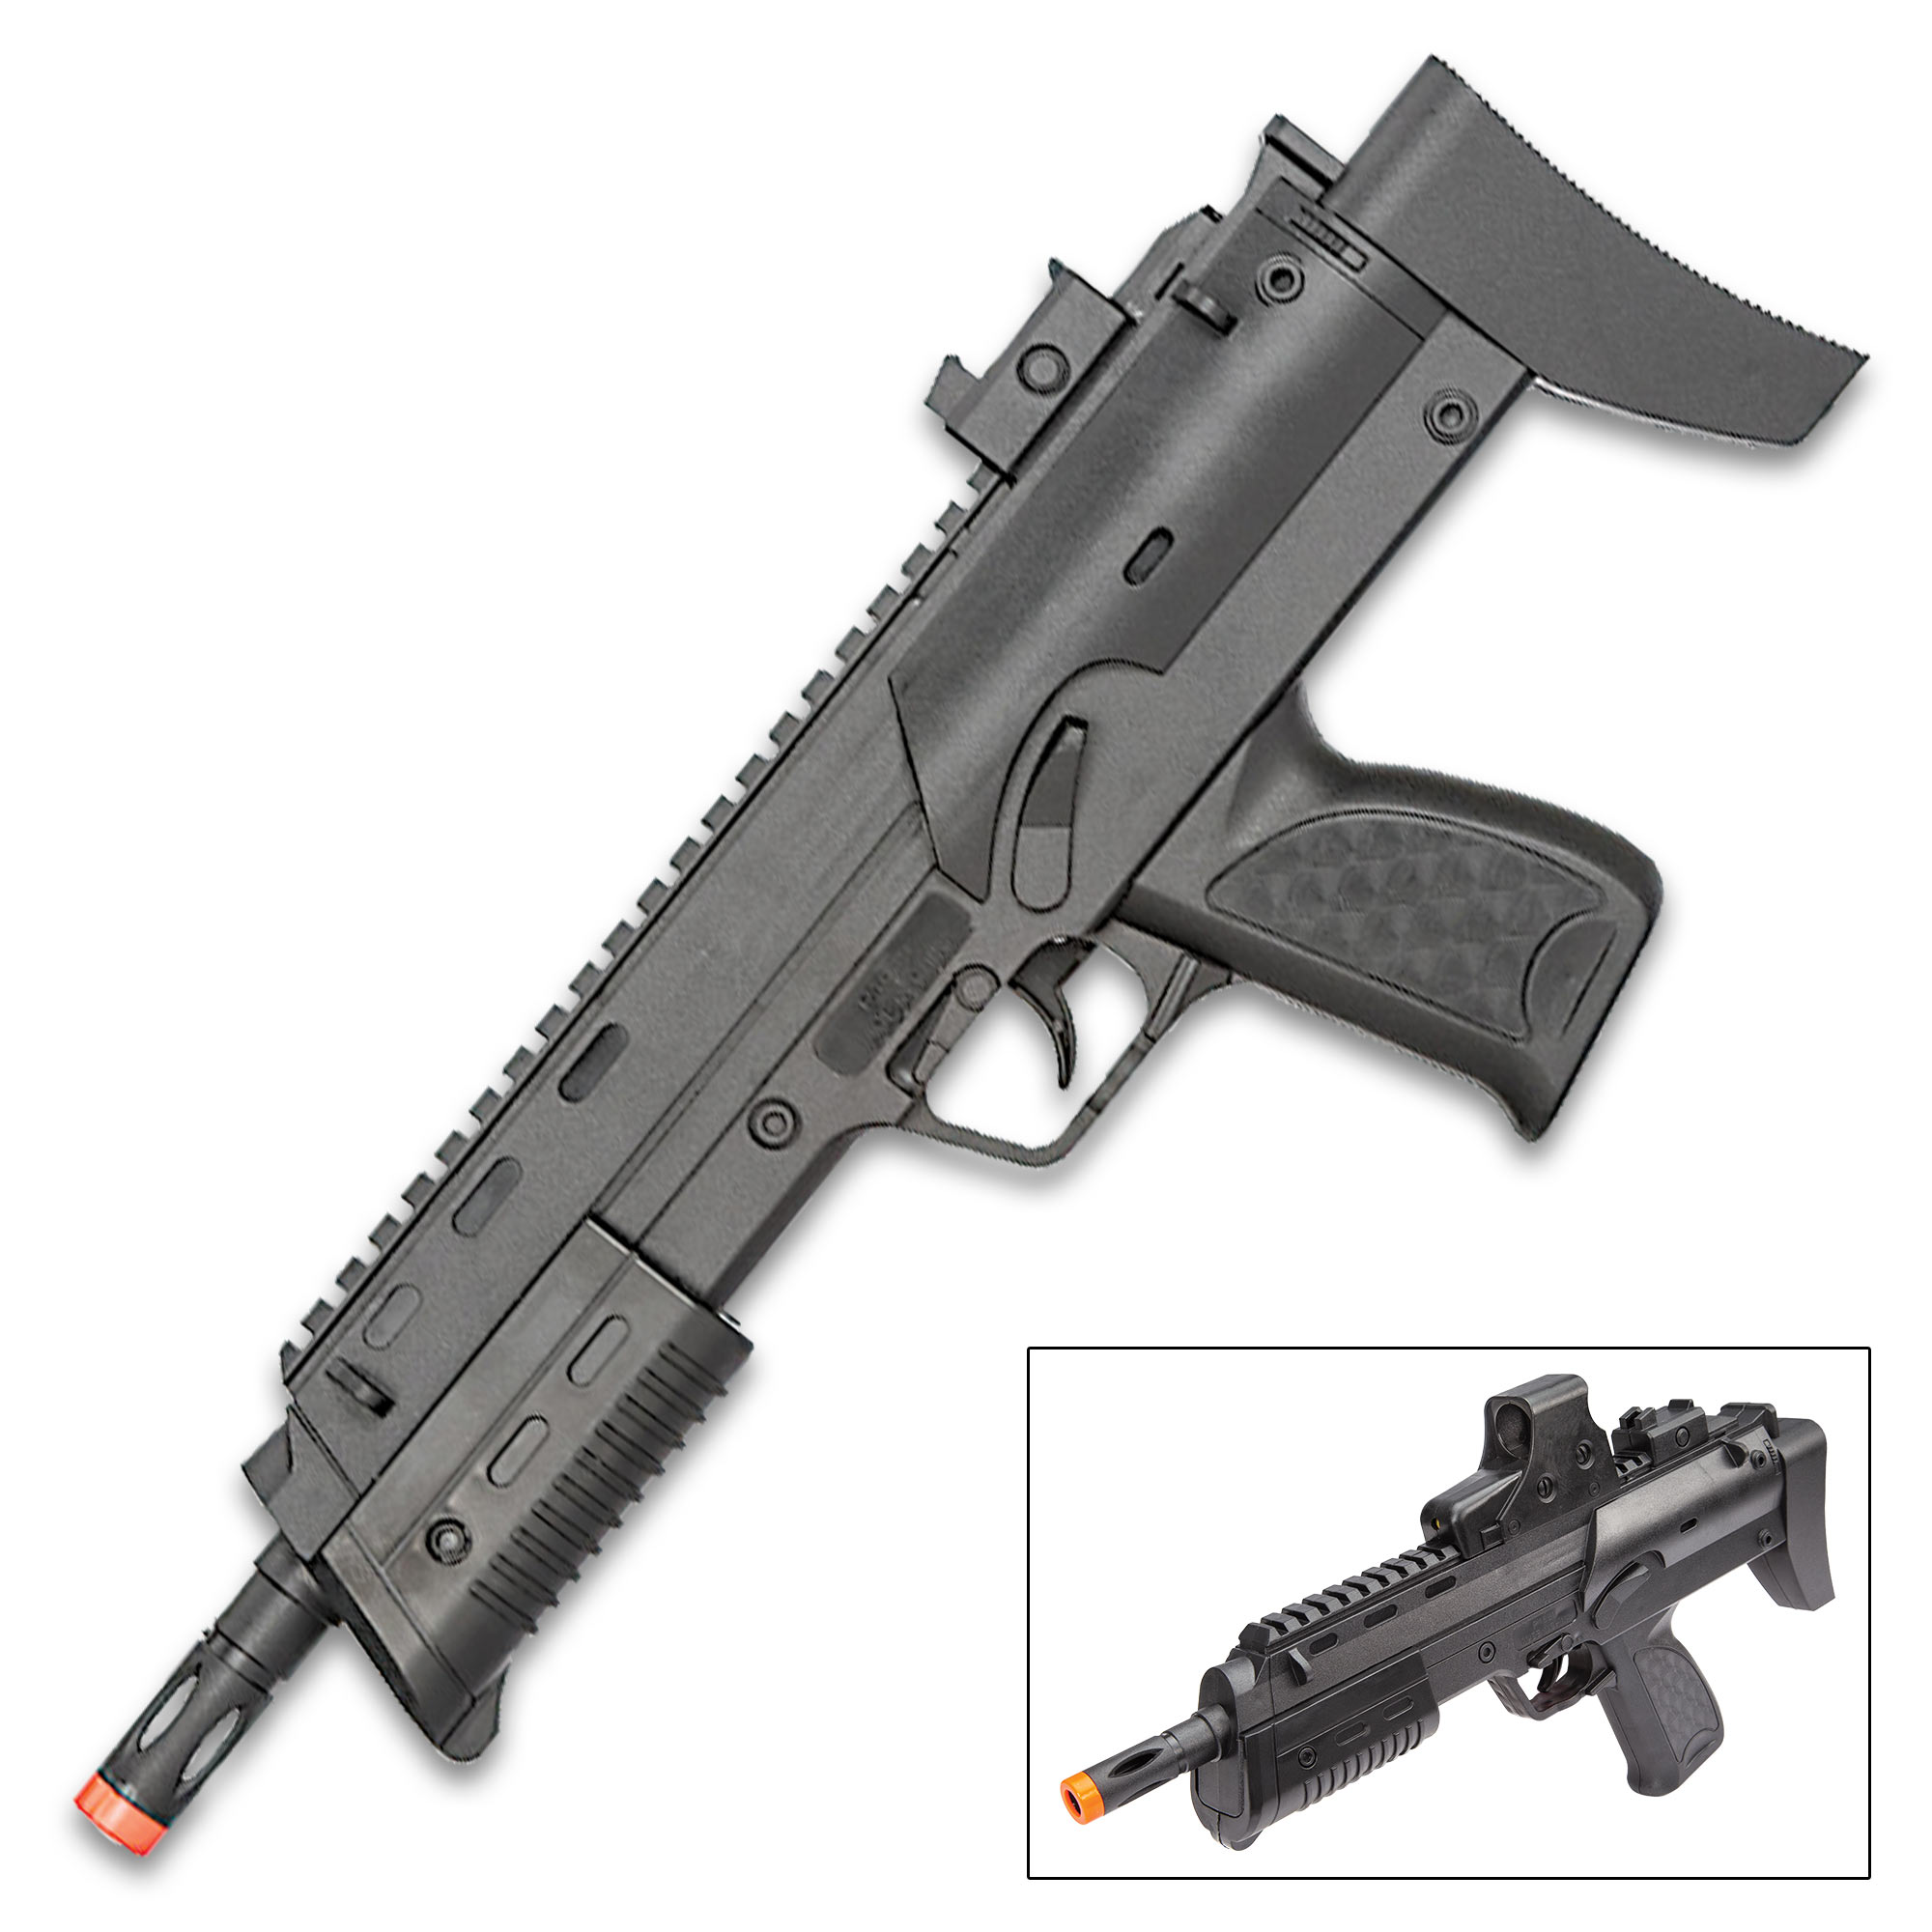 Spring-Powered Uzi Airsoft Gun And Sight With Laser - ABS